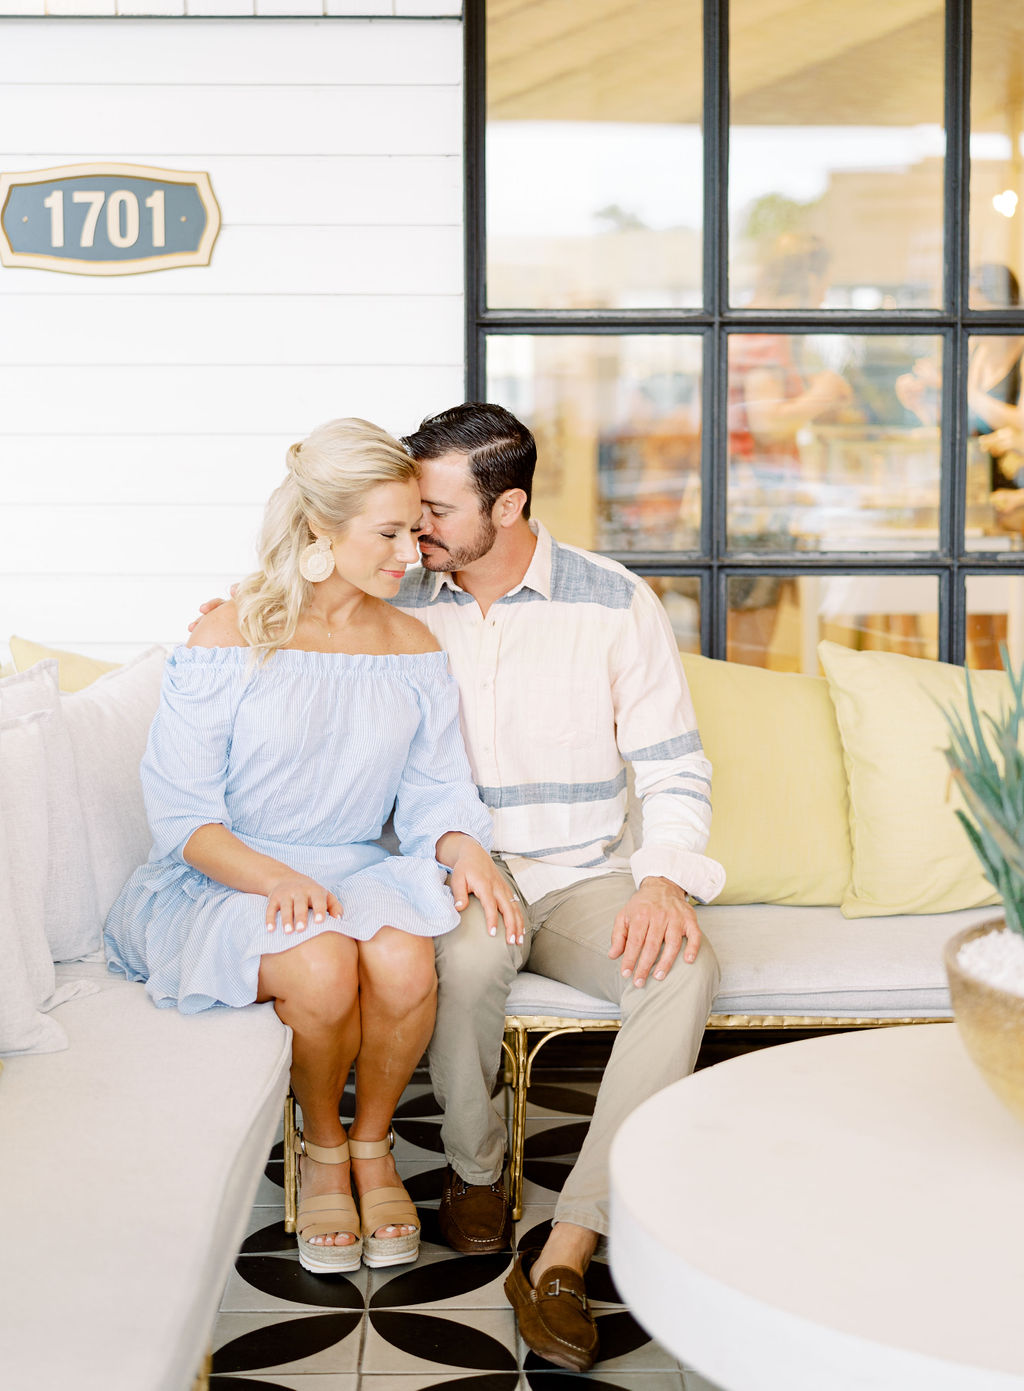 Austin-Elopement-Intimate-Wedding-Photographer-South-Congress-Hotel-Engagement-Session-21.jpg